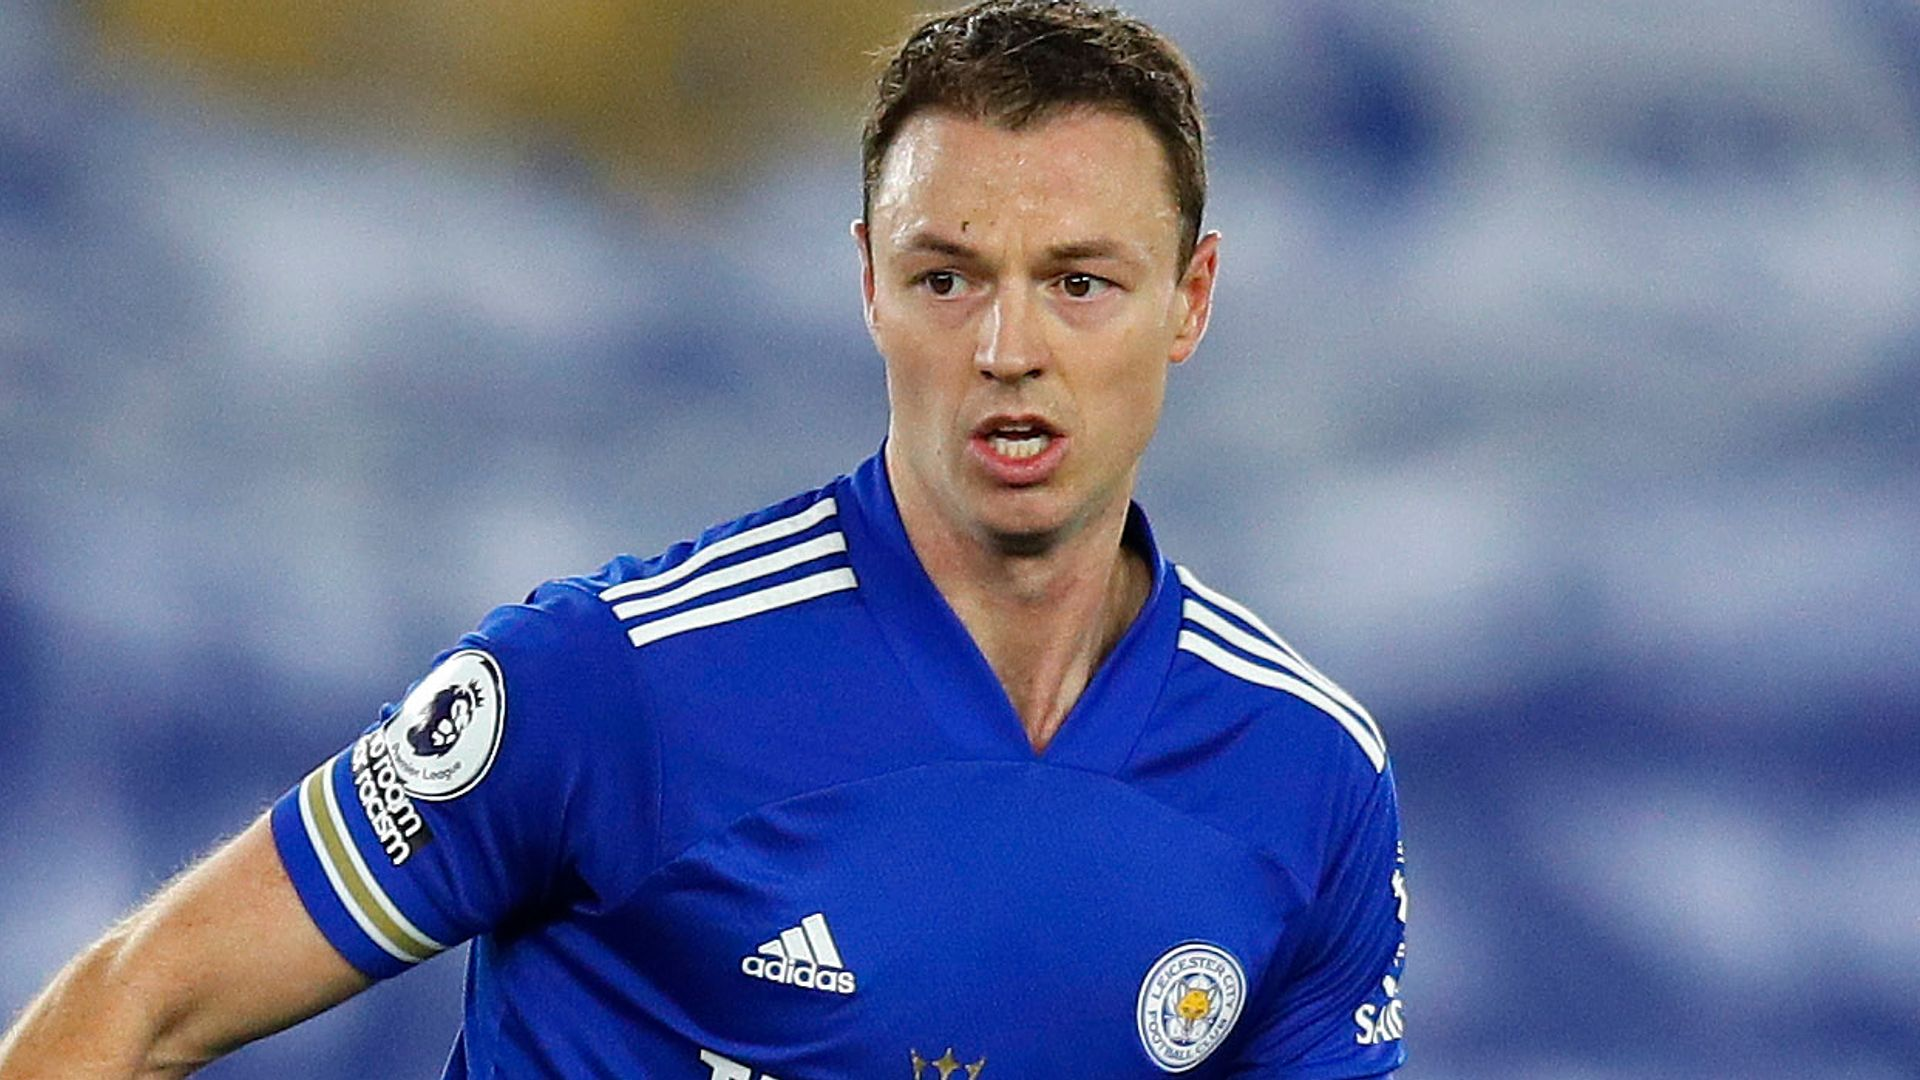 Leicester vs Sheff Utd on Sky: Evans to return